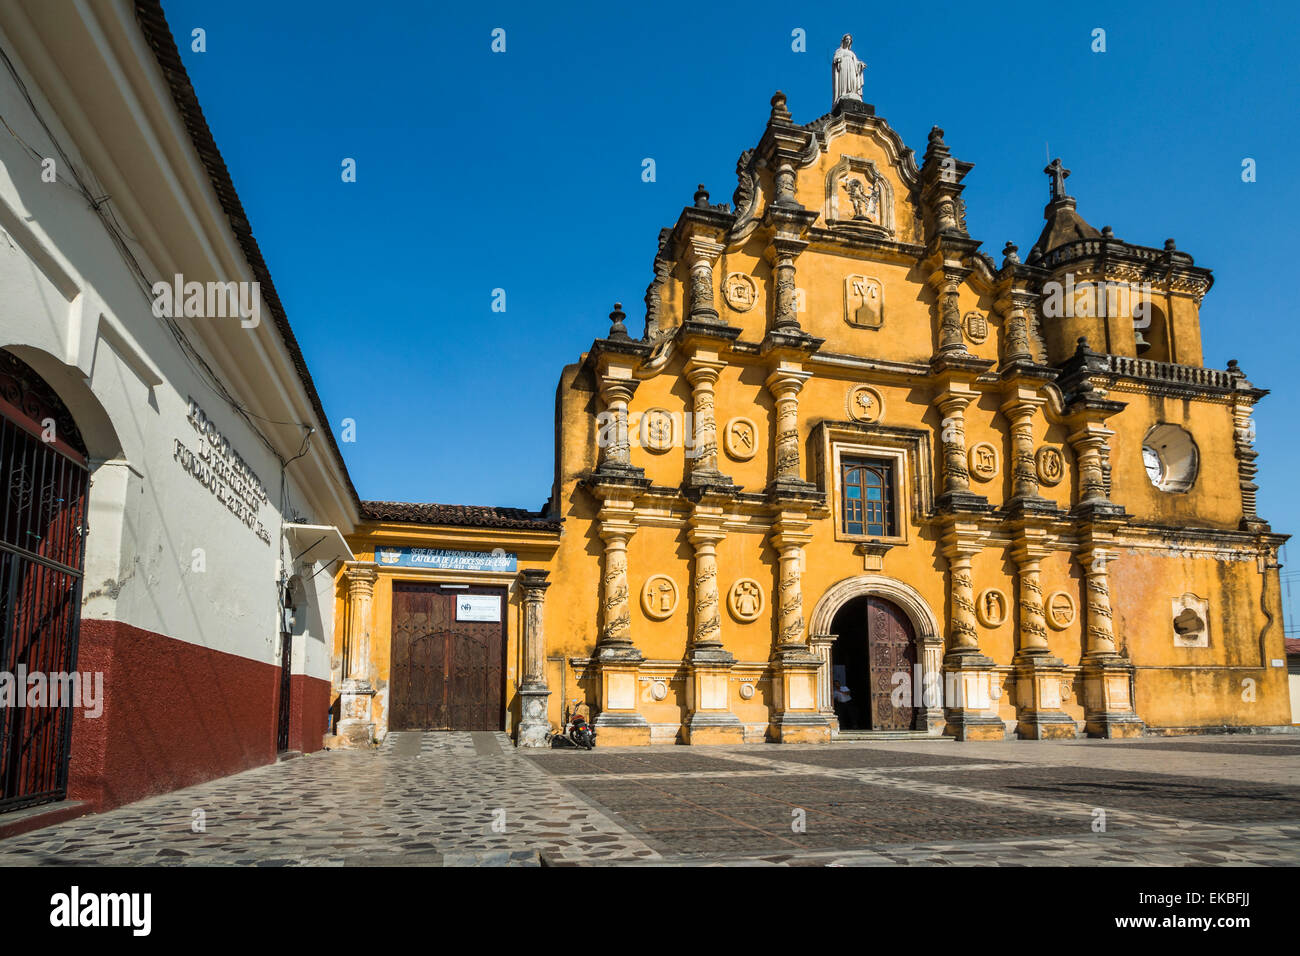 Mexican Style Baroque Facade Of The Iglesia De La Recoleccion Church Built In 1786 Leon Nicaragua